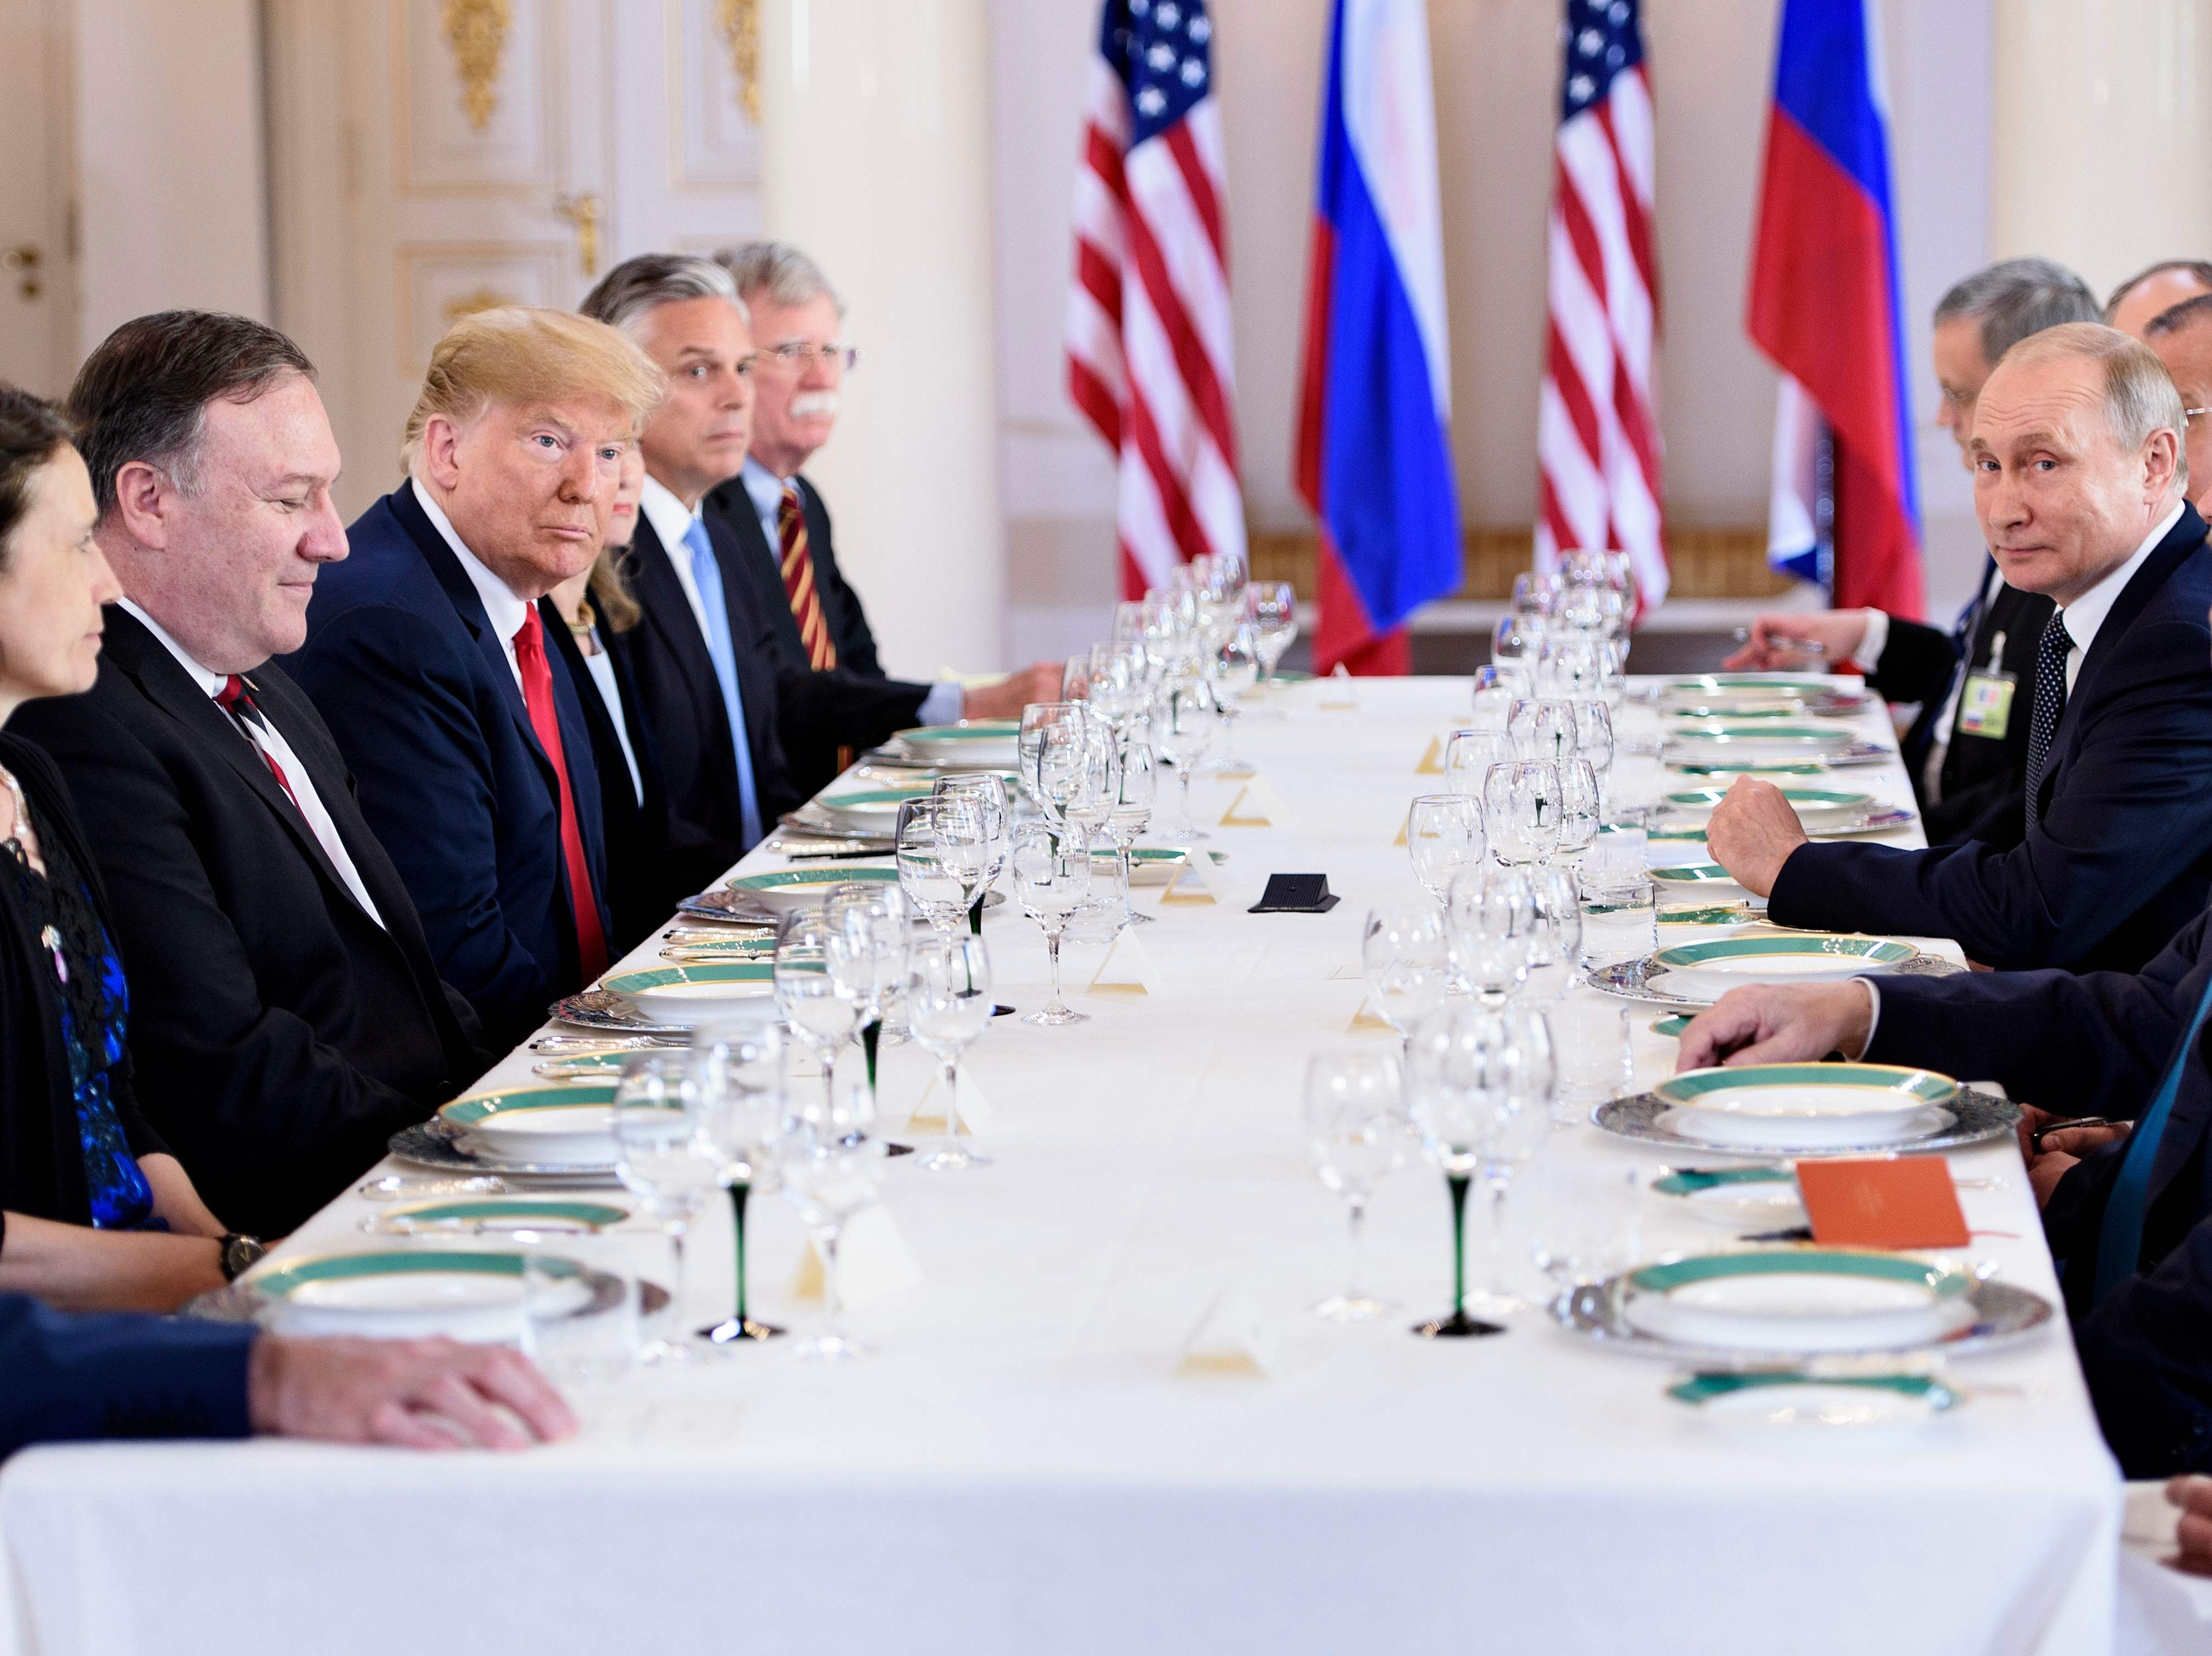 "US President Donald Trump, Russia's President Vladimir Putin and others wait for a working lunch meeting at Finland's Presidential Palace on July 16, 2018 in Helsinki, Finland. The US and Russian leaders opened an historic summit in Helsinki, with Donald Trump promising an ""extraordinary relationship"" and Vladimir Putin saying it was high time to thrash out disputes around the world."